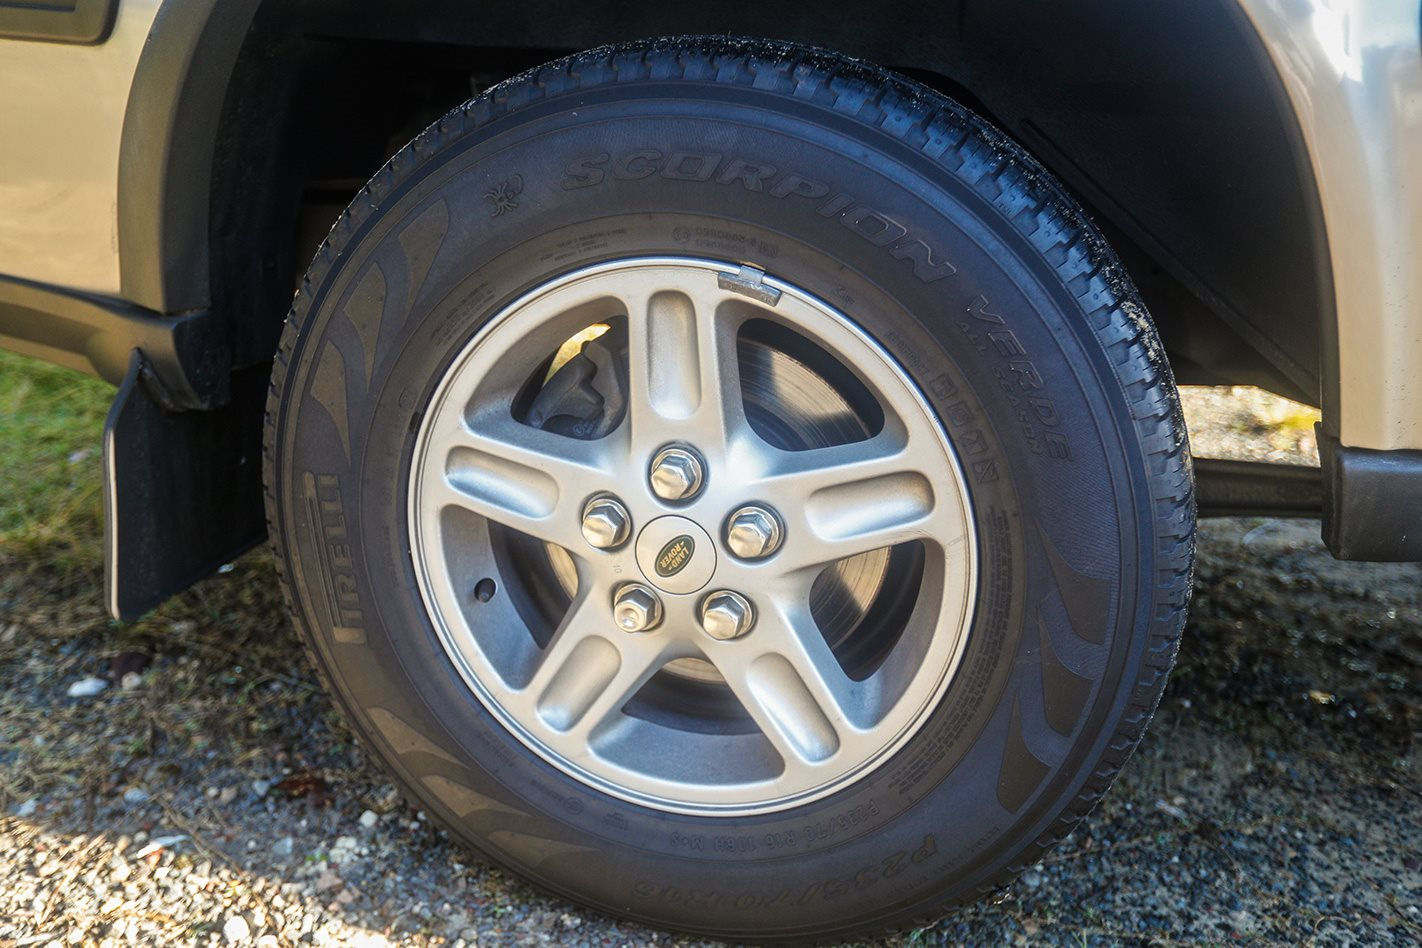 2003 Land Rover Discovery TD5 wheel